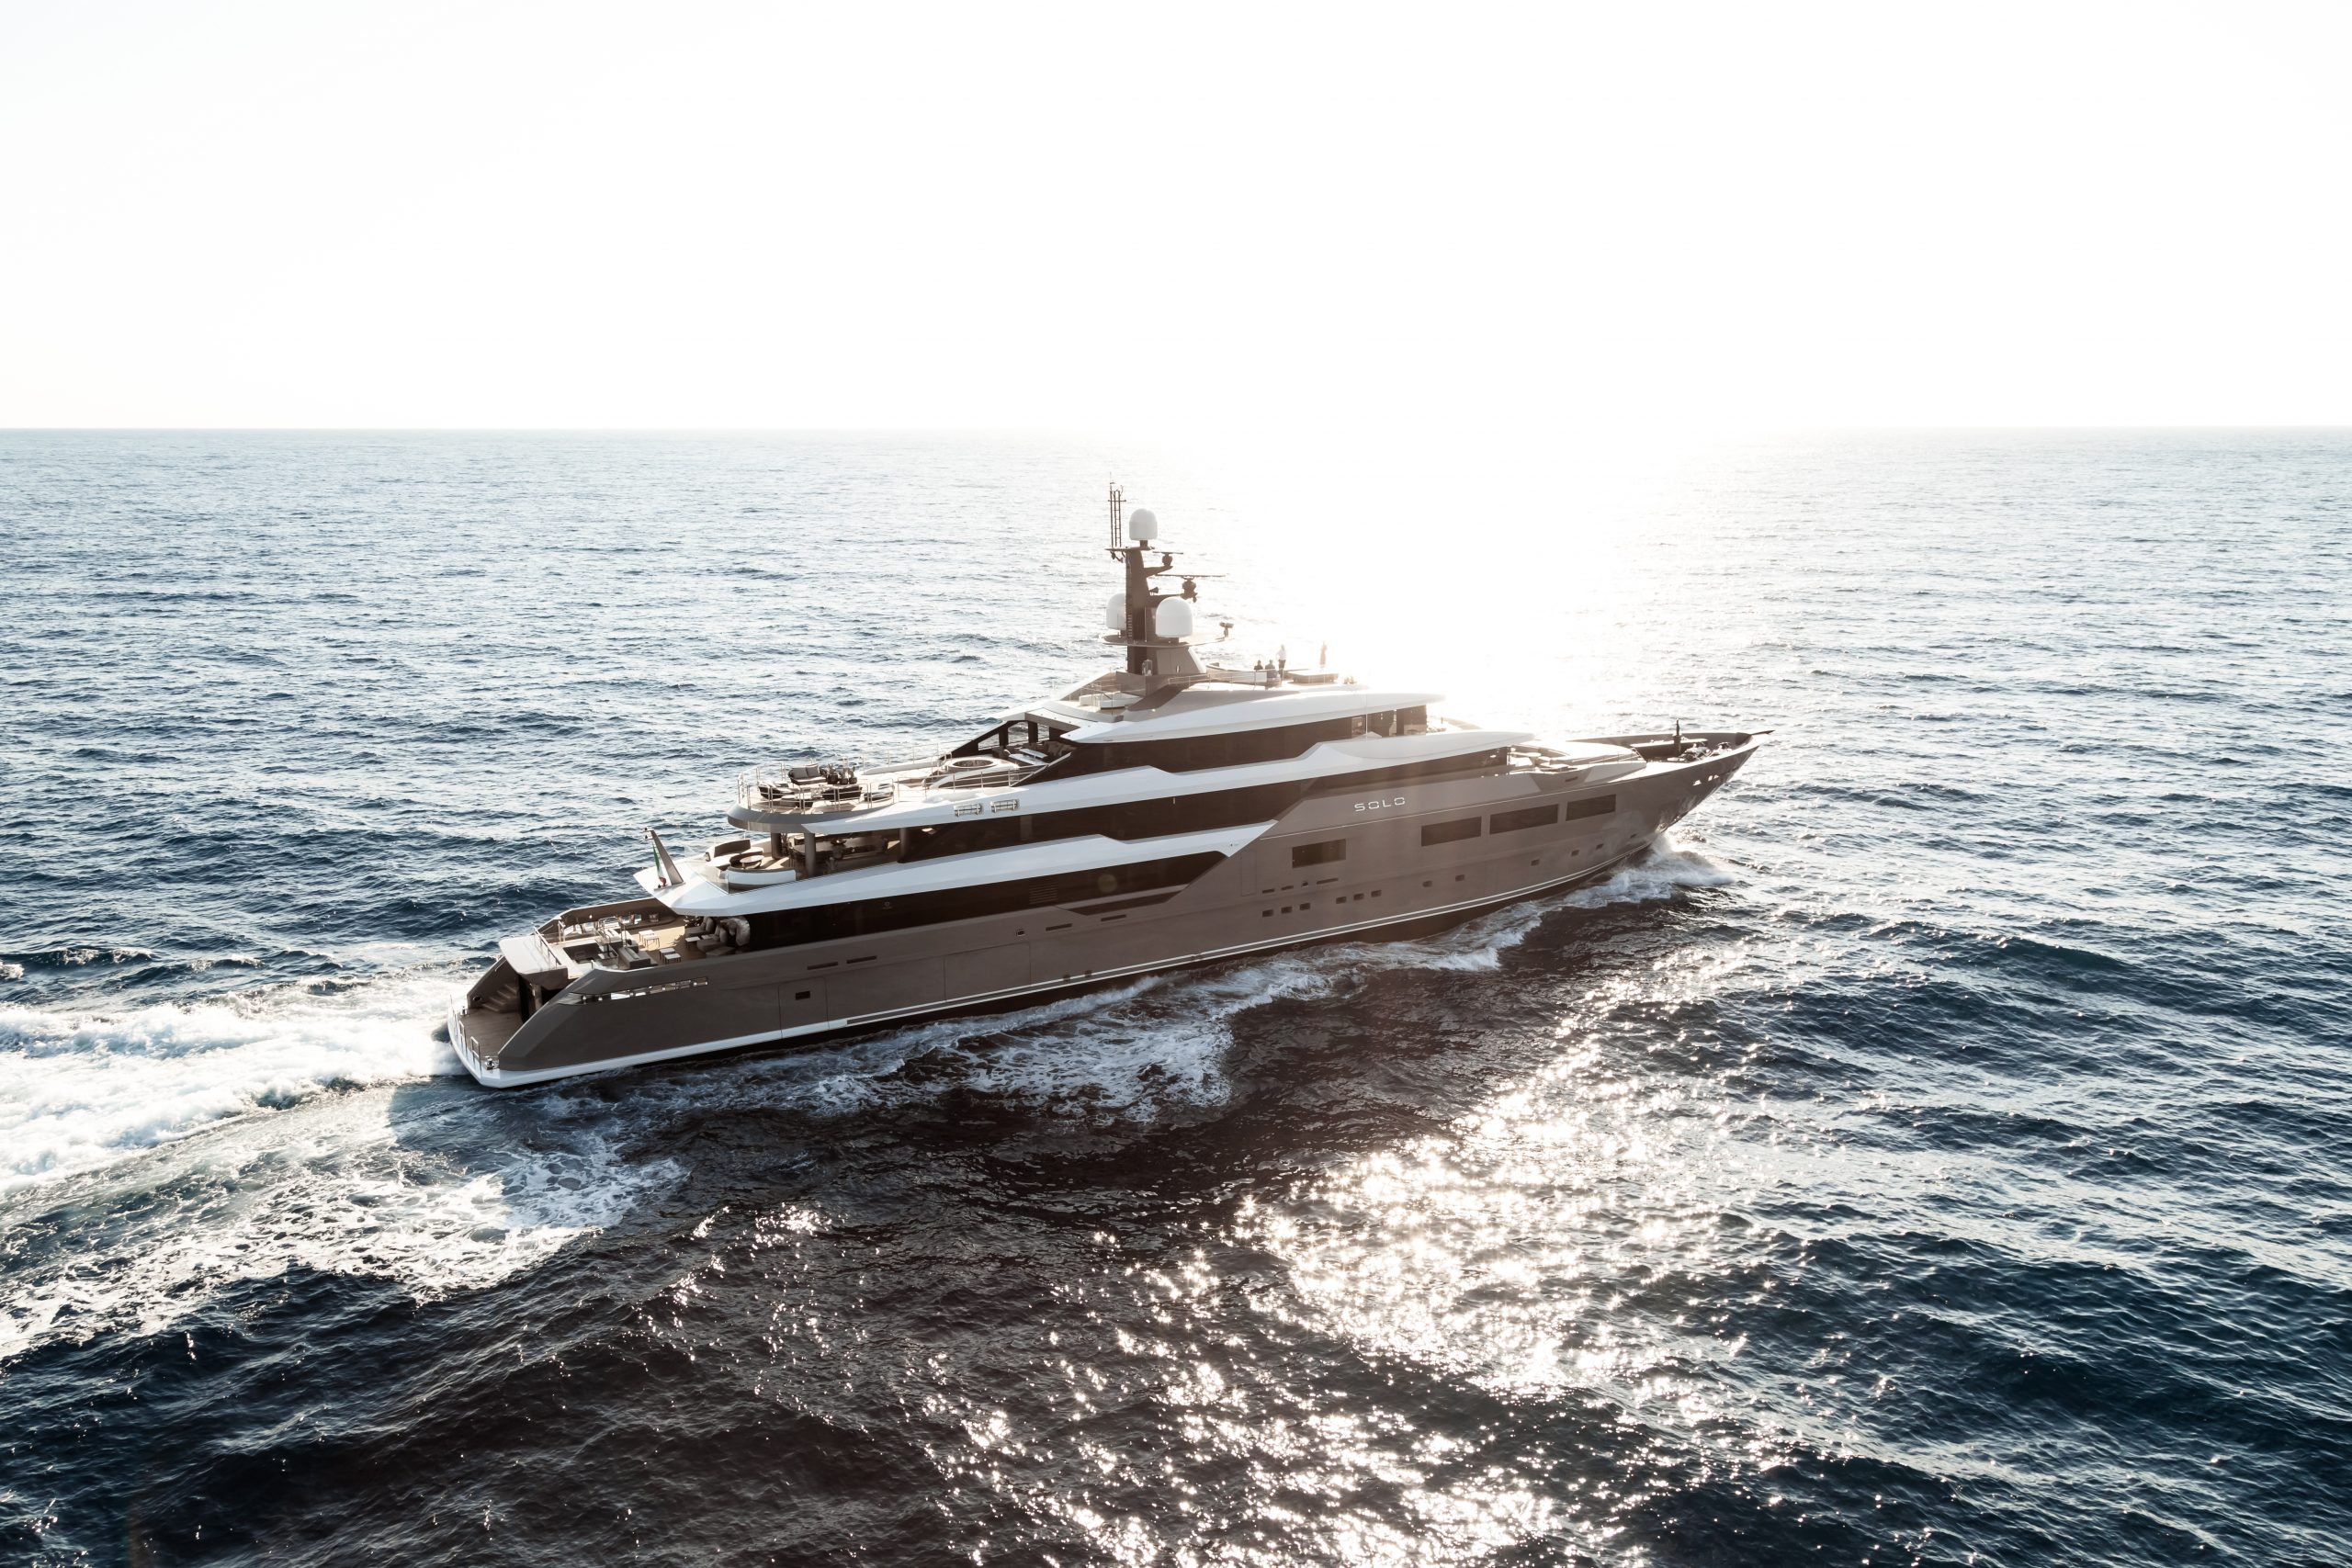 SOLO Mediterranean luxury yacht for sale and charter near sunset in French Riviera